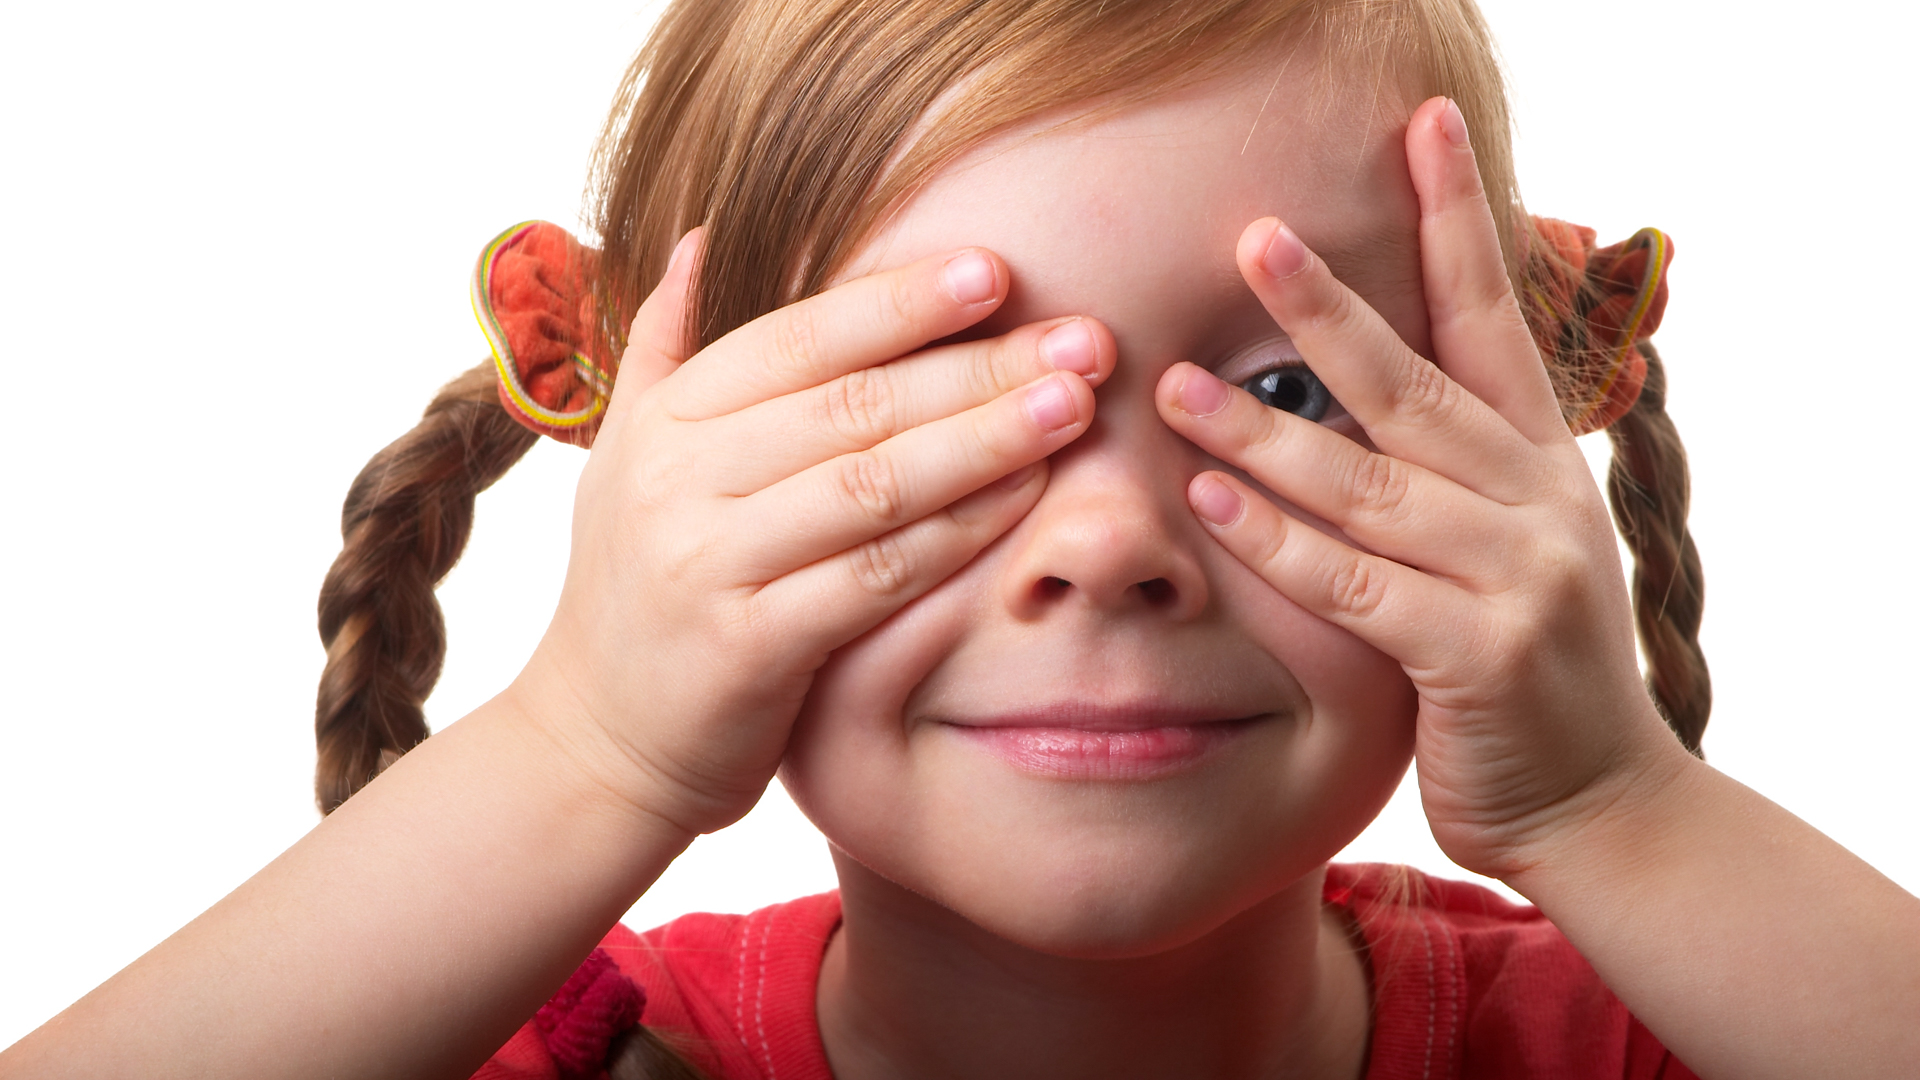 Peek into the future with Early Childhood Education